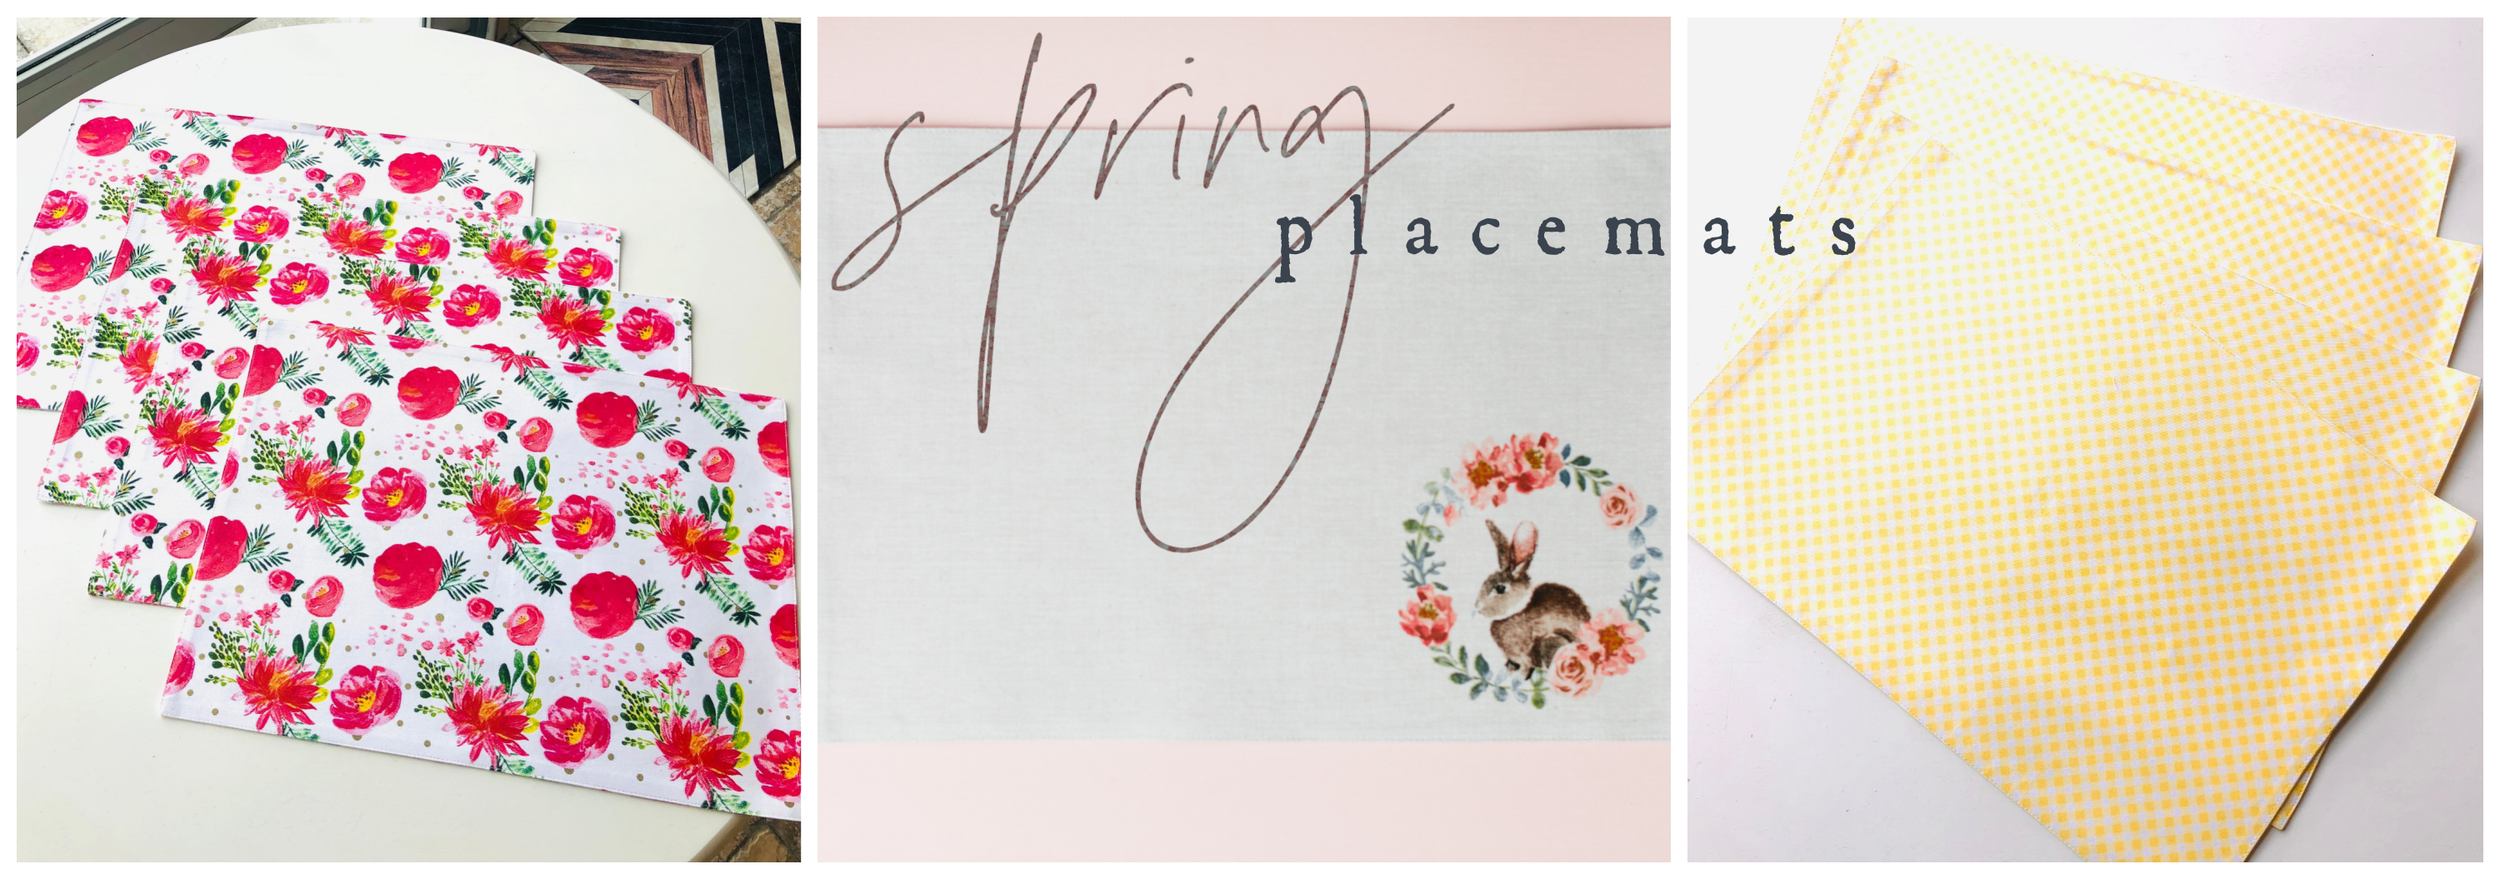 Spring Placemats